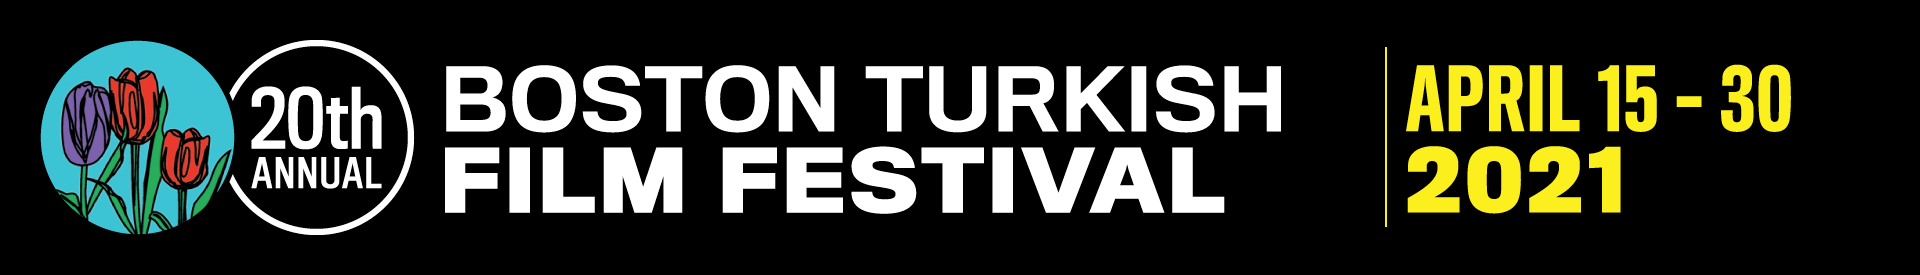 Boston Turkish Film Festival